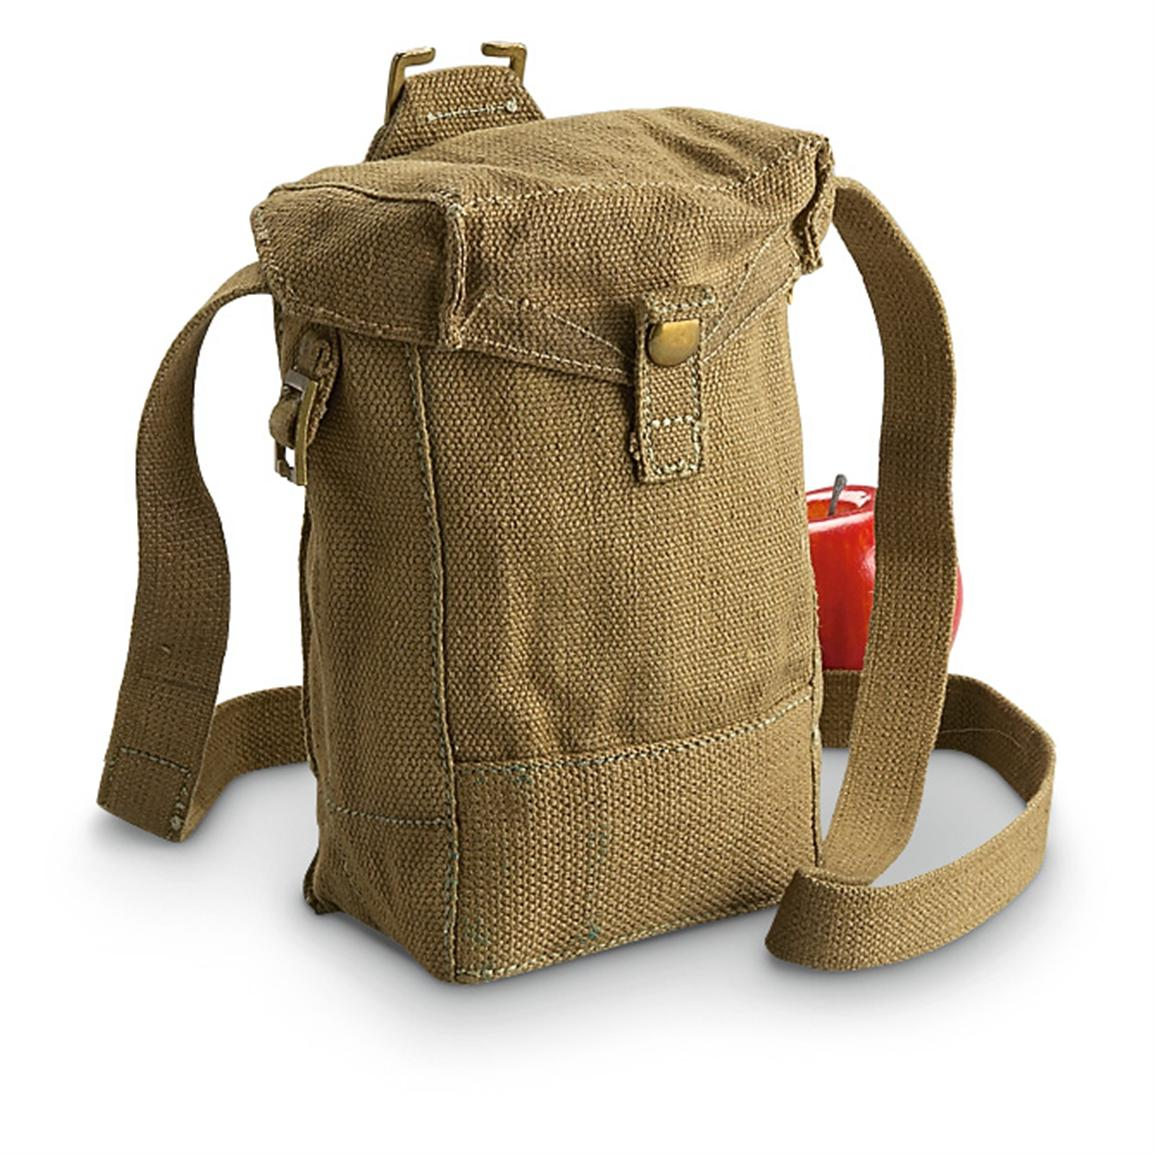 2-Pk. of Used British Military Surplus Canvas Shoulder Bags, Olive Drab - 122-cu. in. capacity